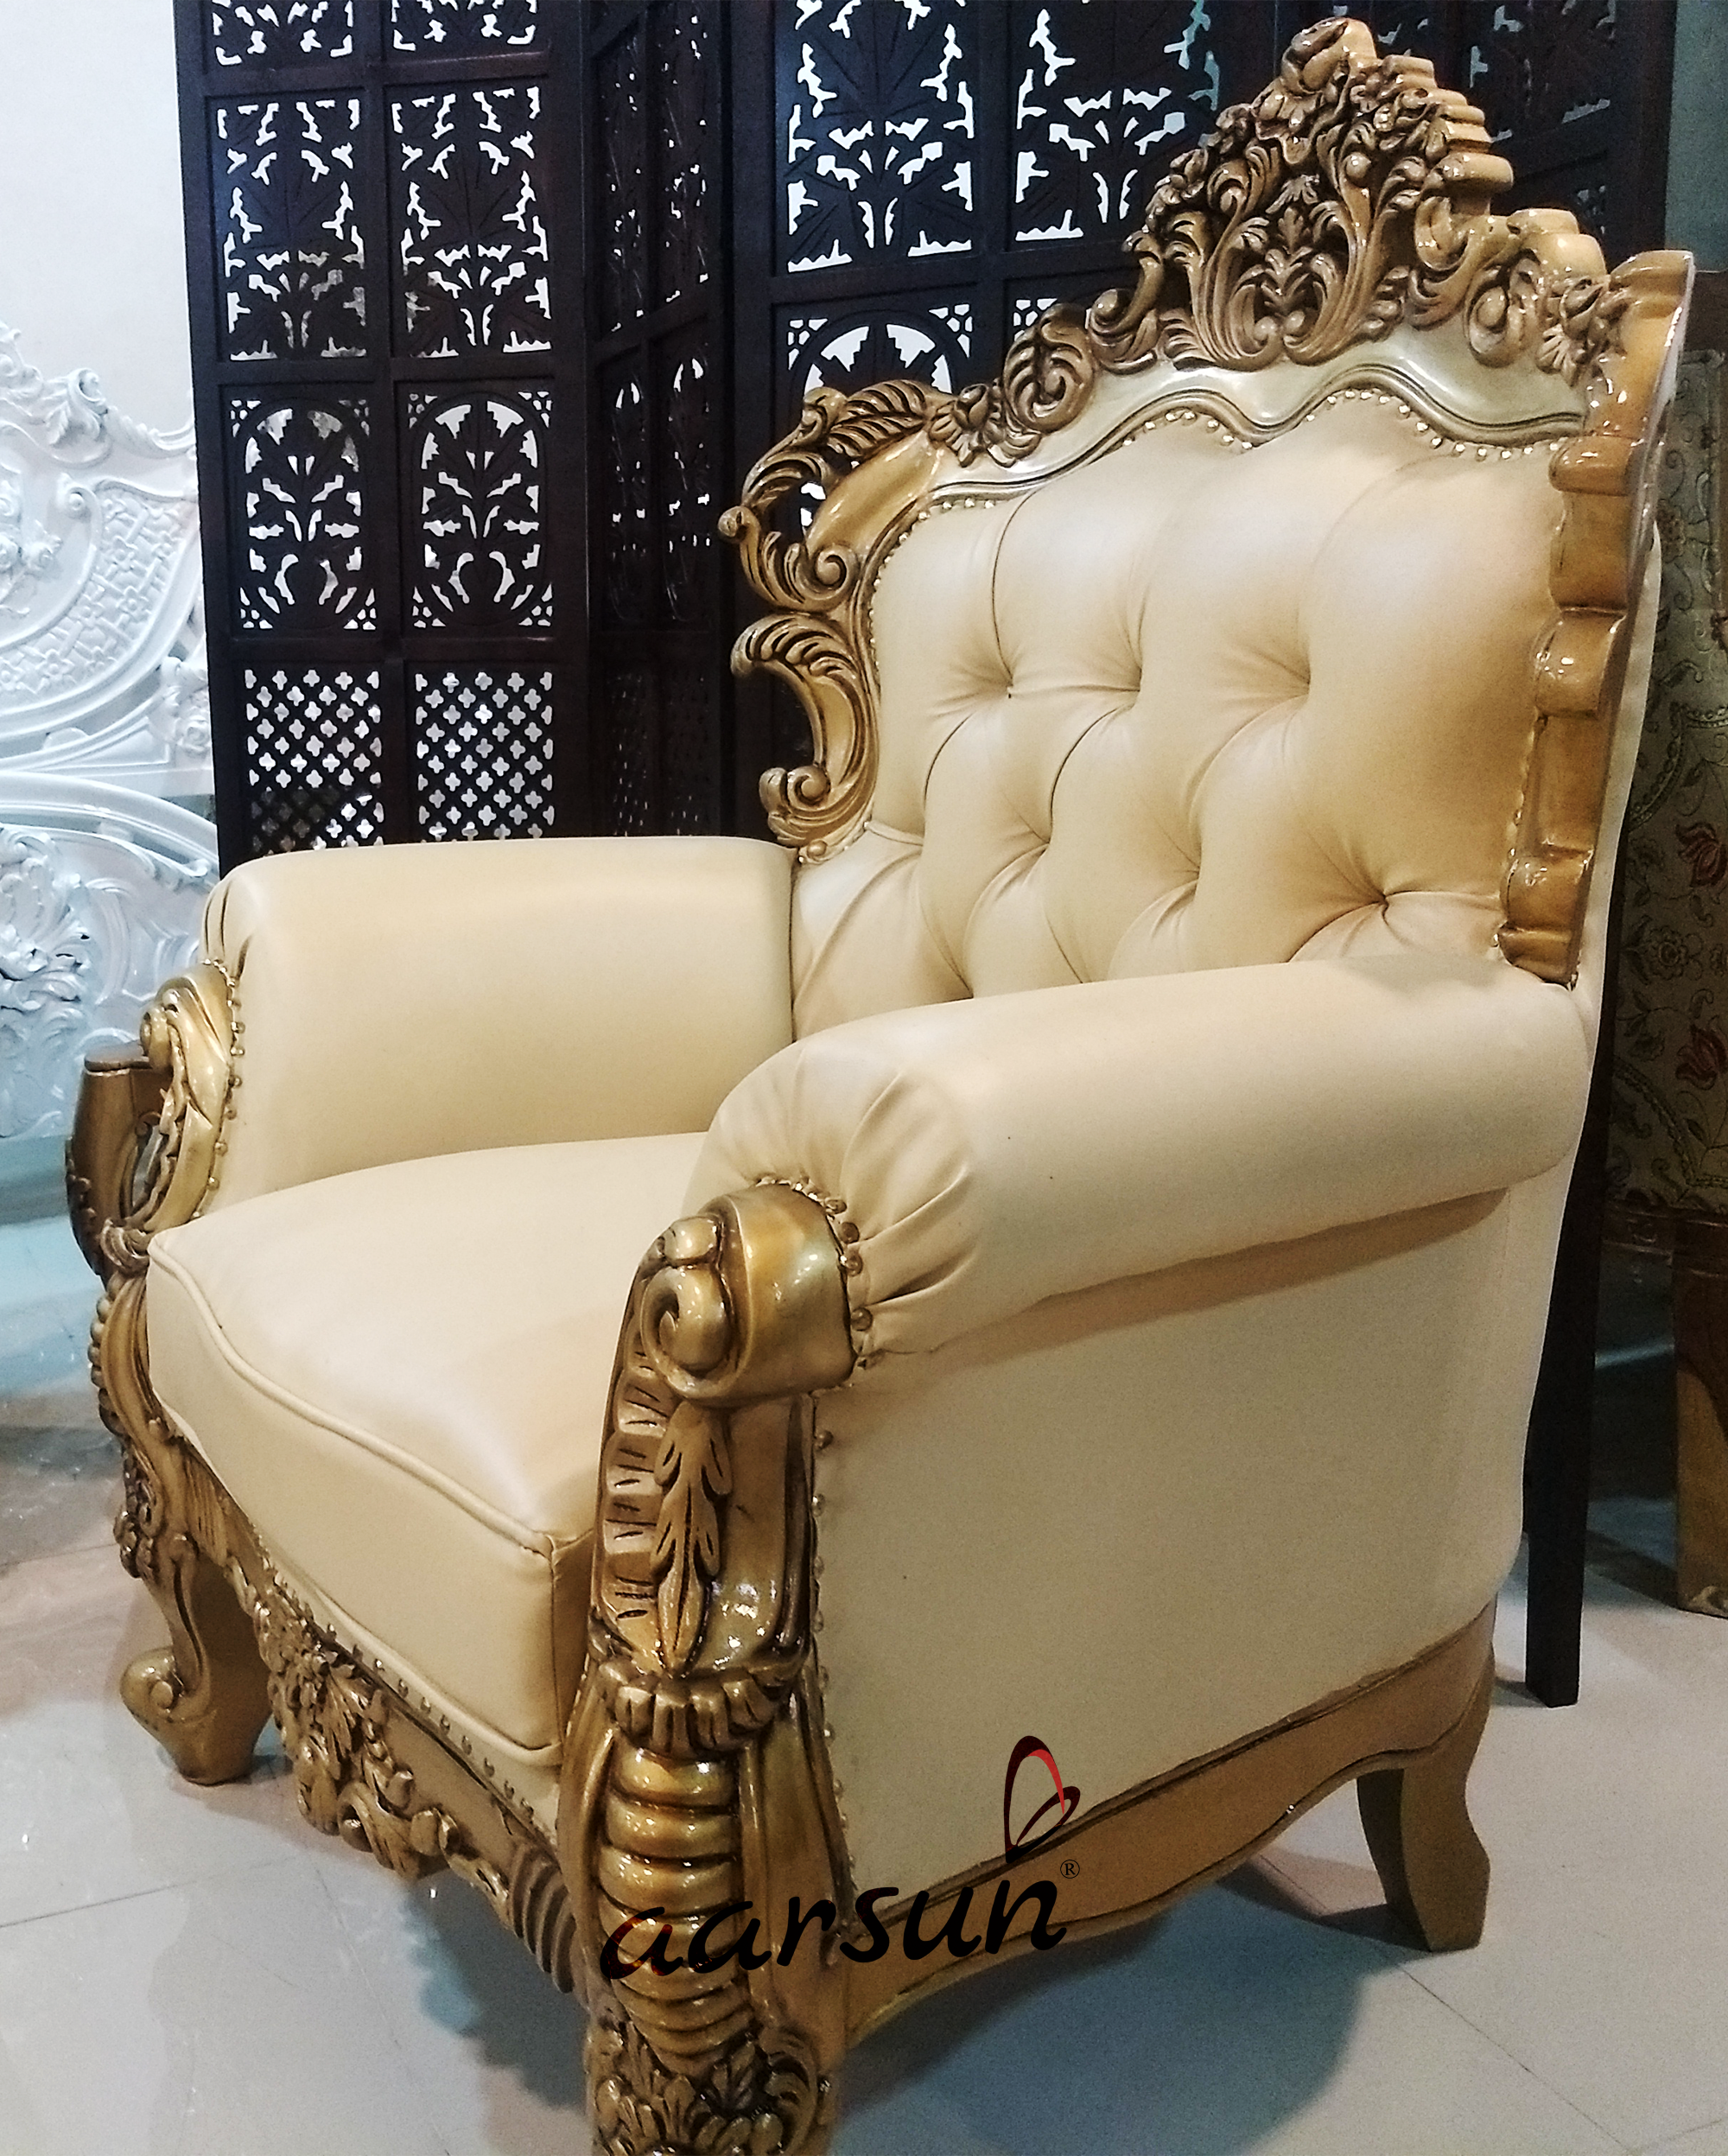 Best Quality Handmade Living Room Carved Furniture Yt 104 Wooden Sofa Set Designs Luxury Furniture Living Room Carved Furniture